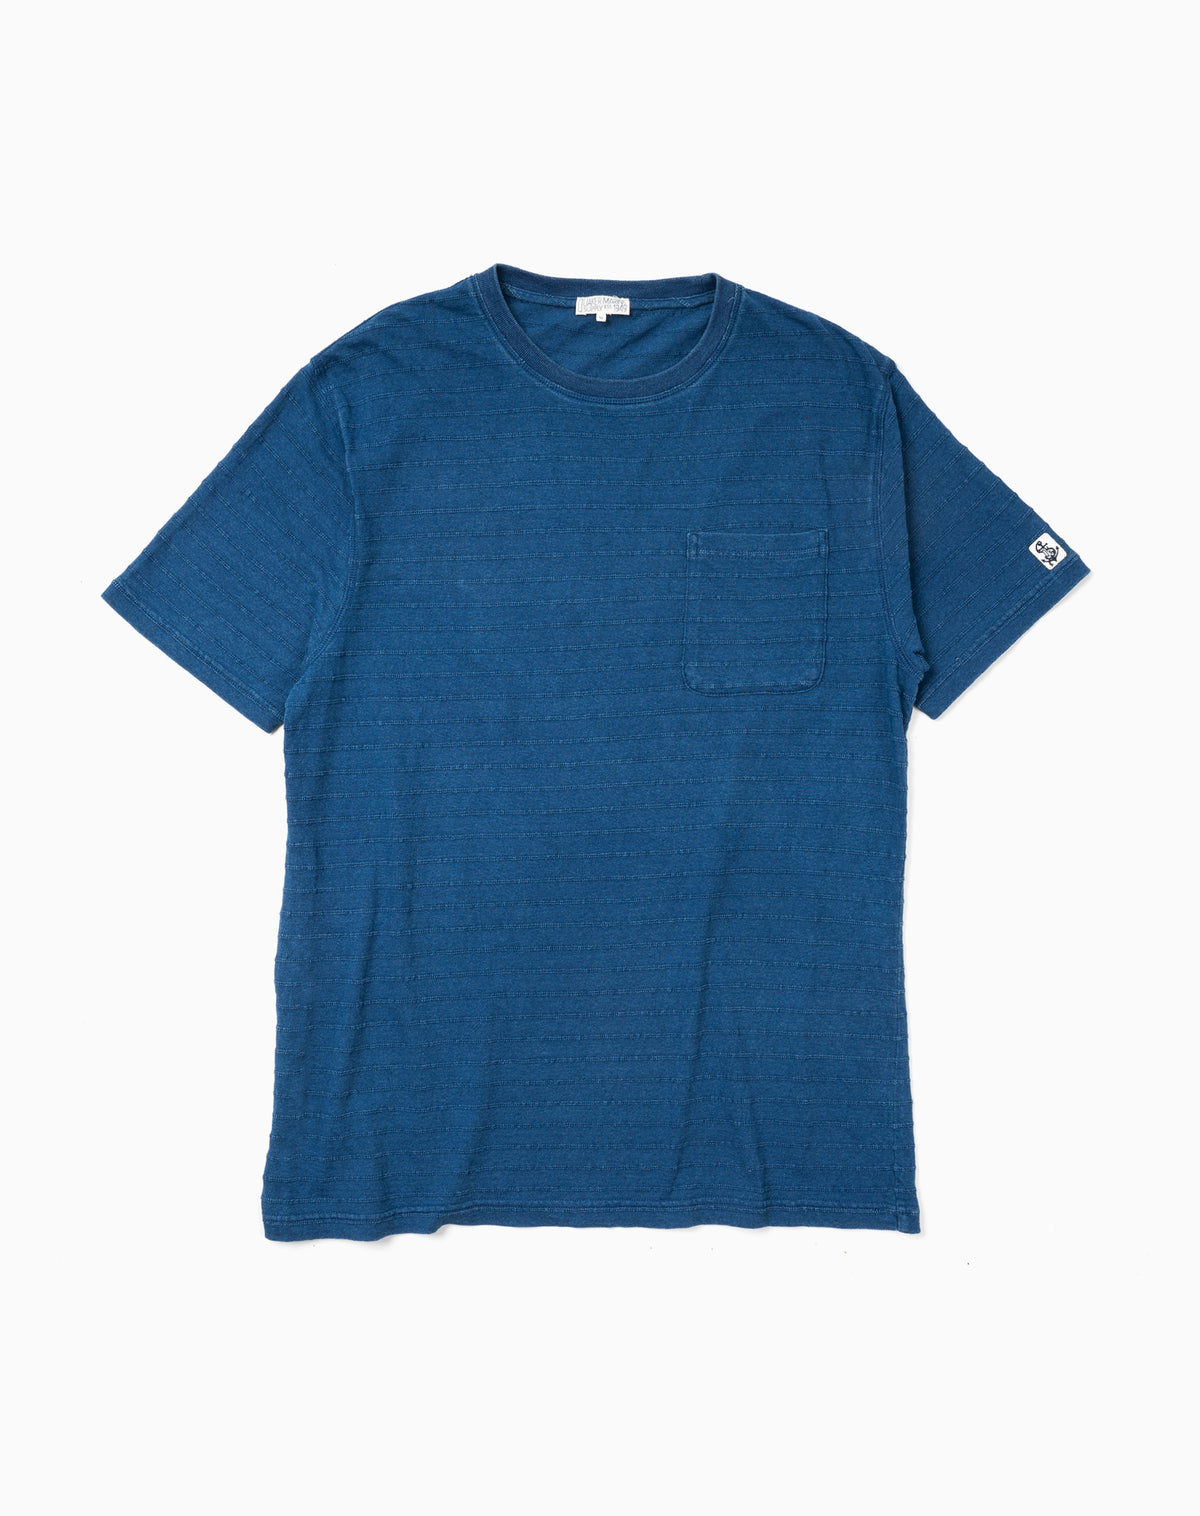 Indigo Pocket Tee in Tonal Jacquard Stripe